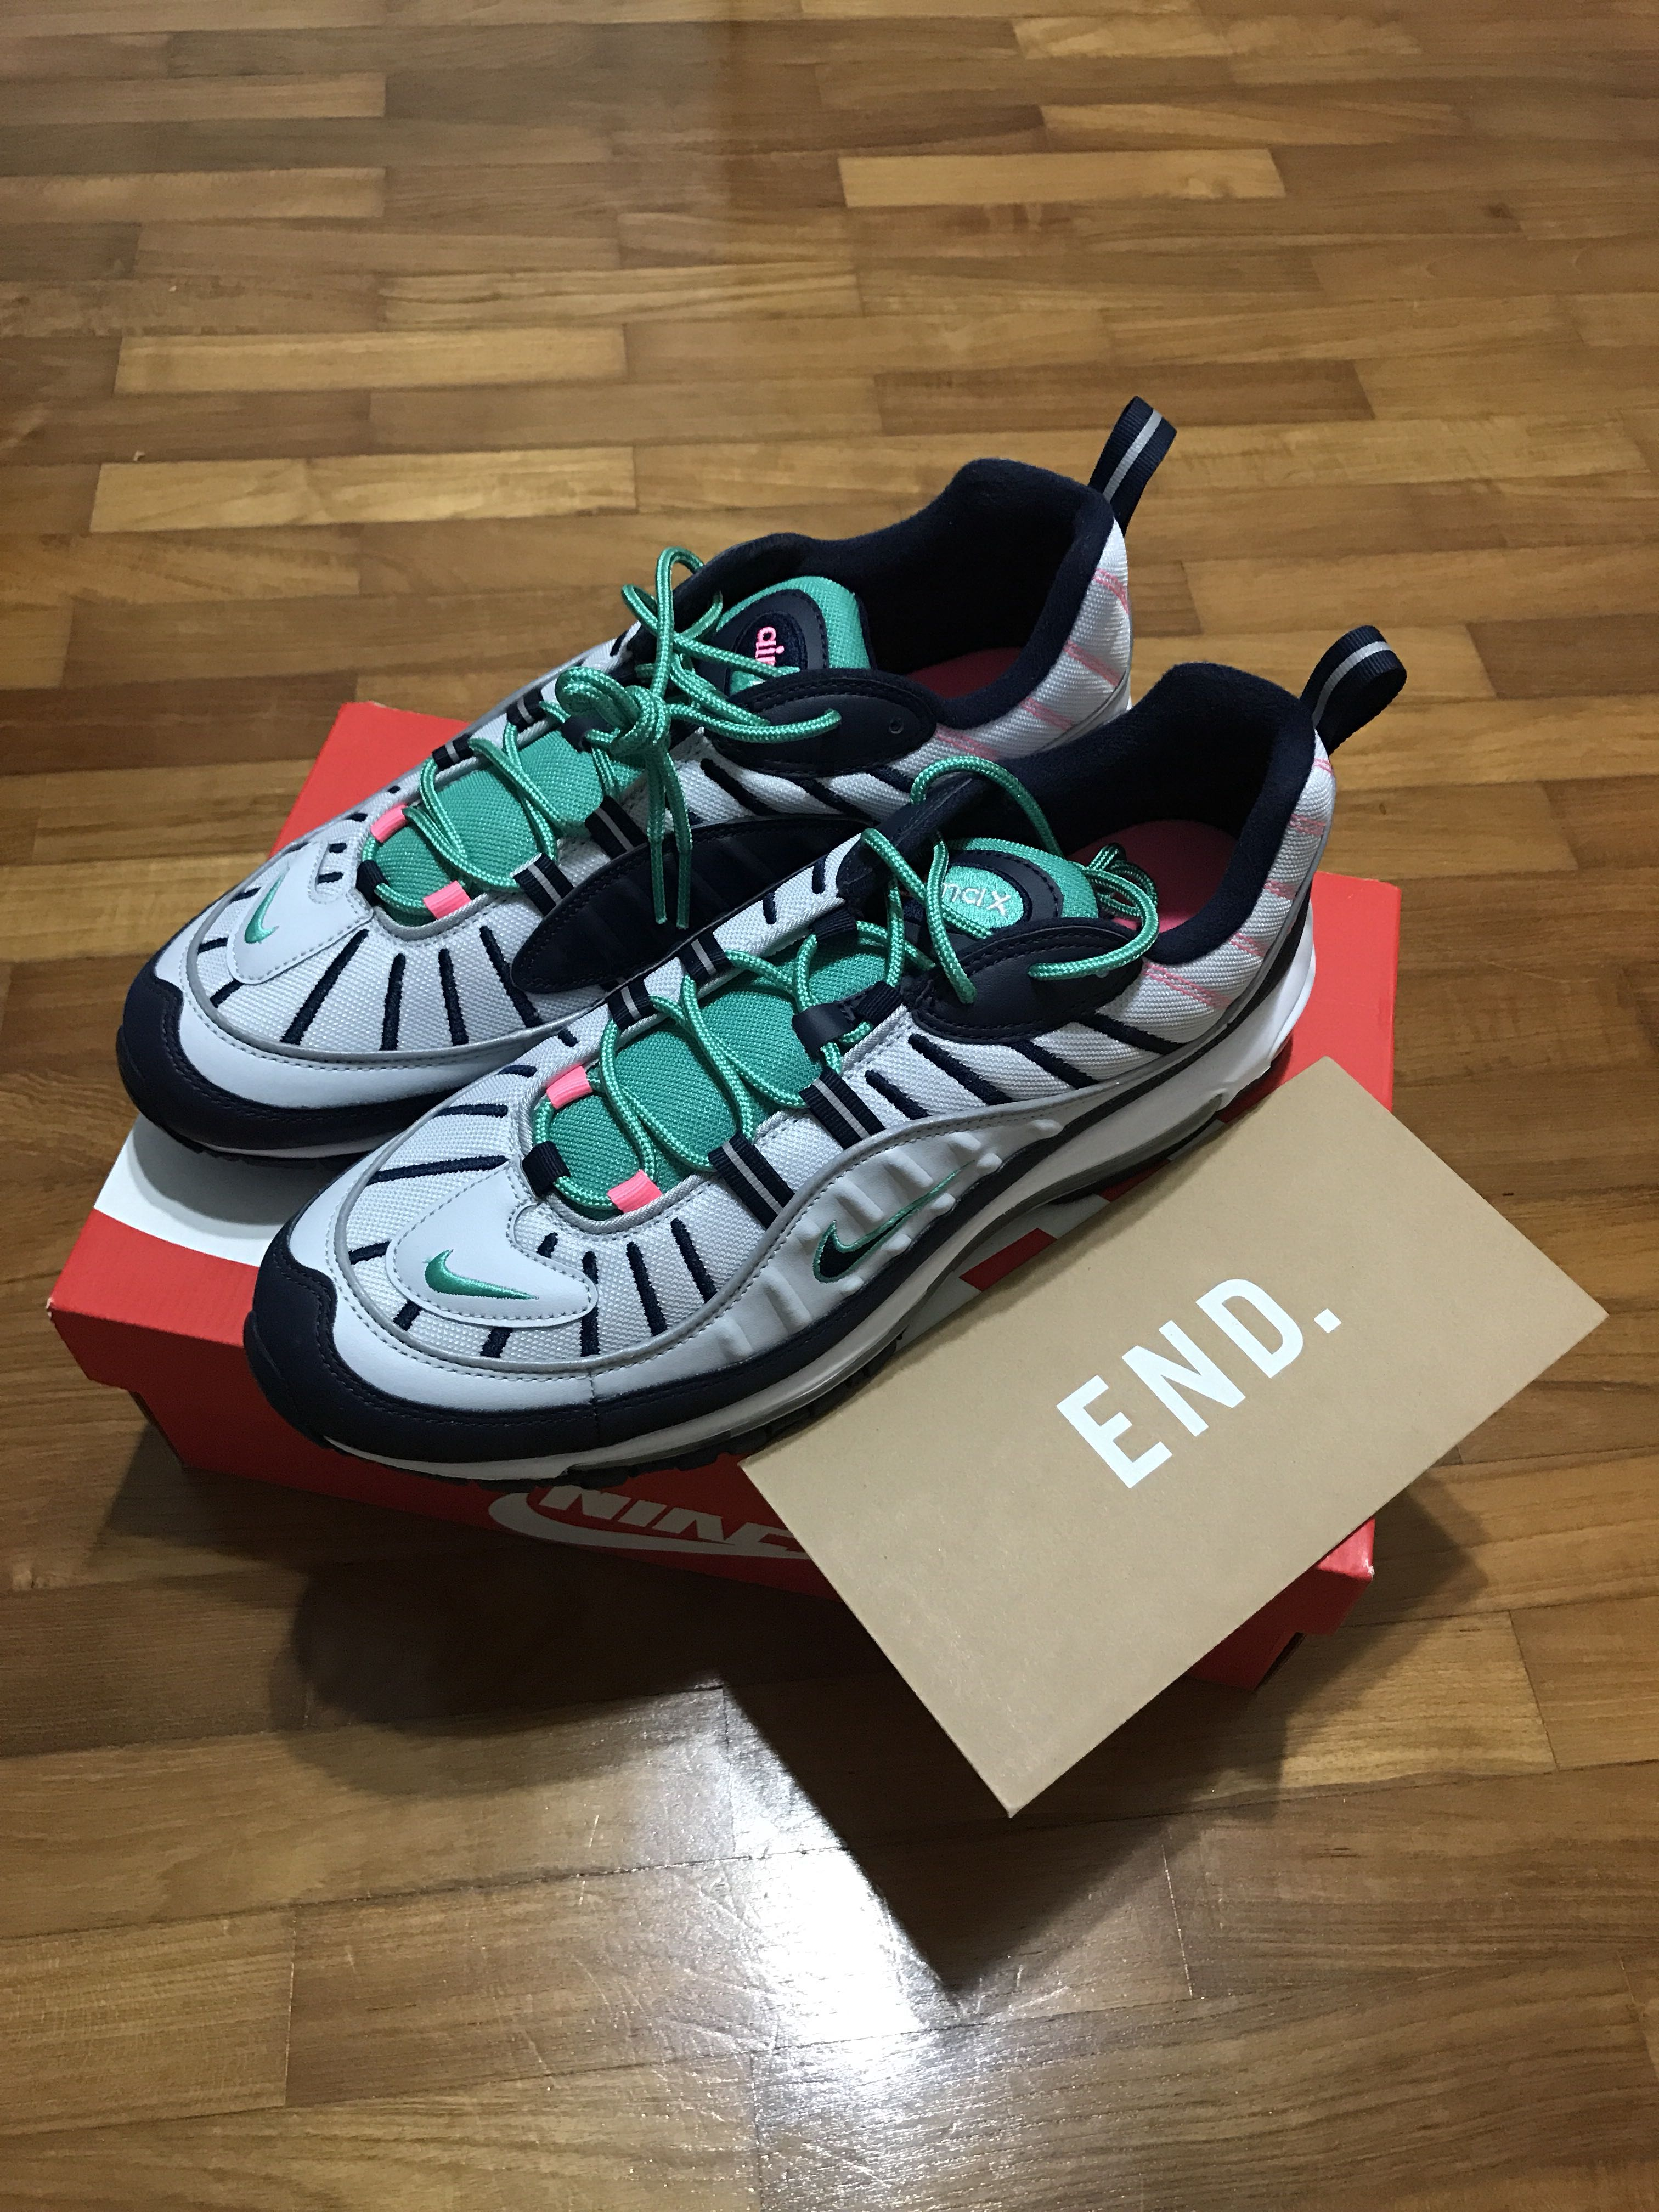 Vuelo cristiandad dolor  Nike Air Max 98 'Miami', Men's Fashion, Footwear, Sneakers on Carousell